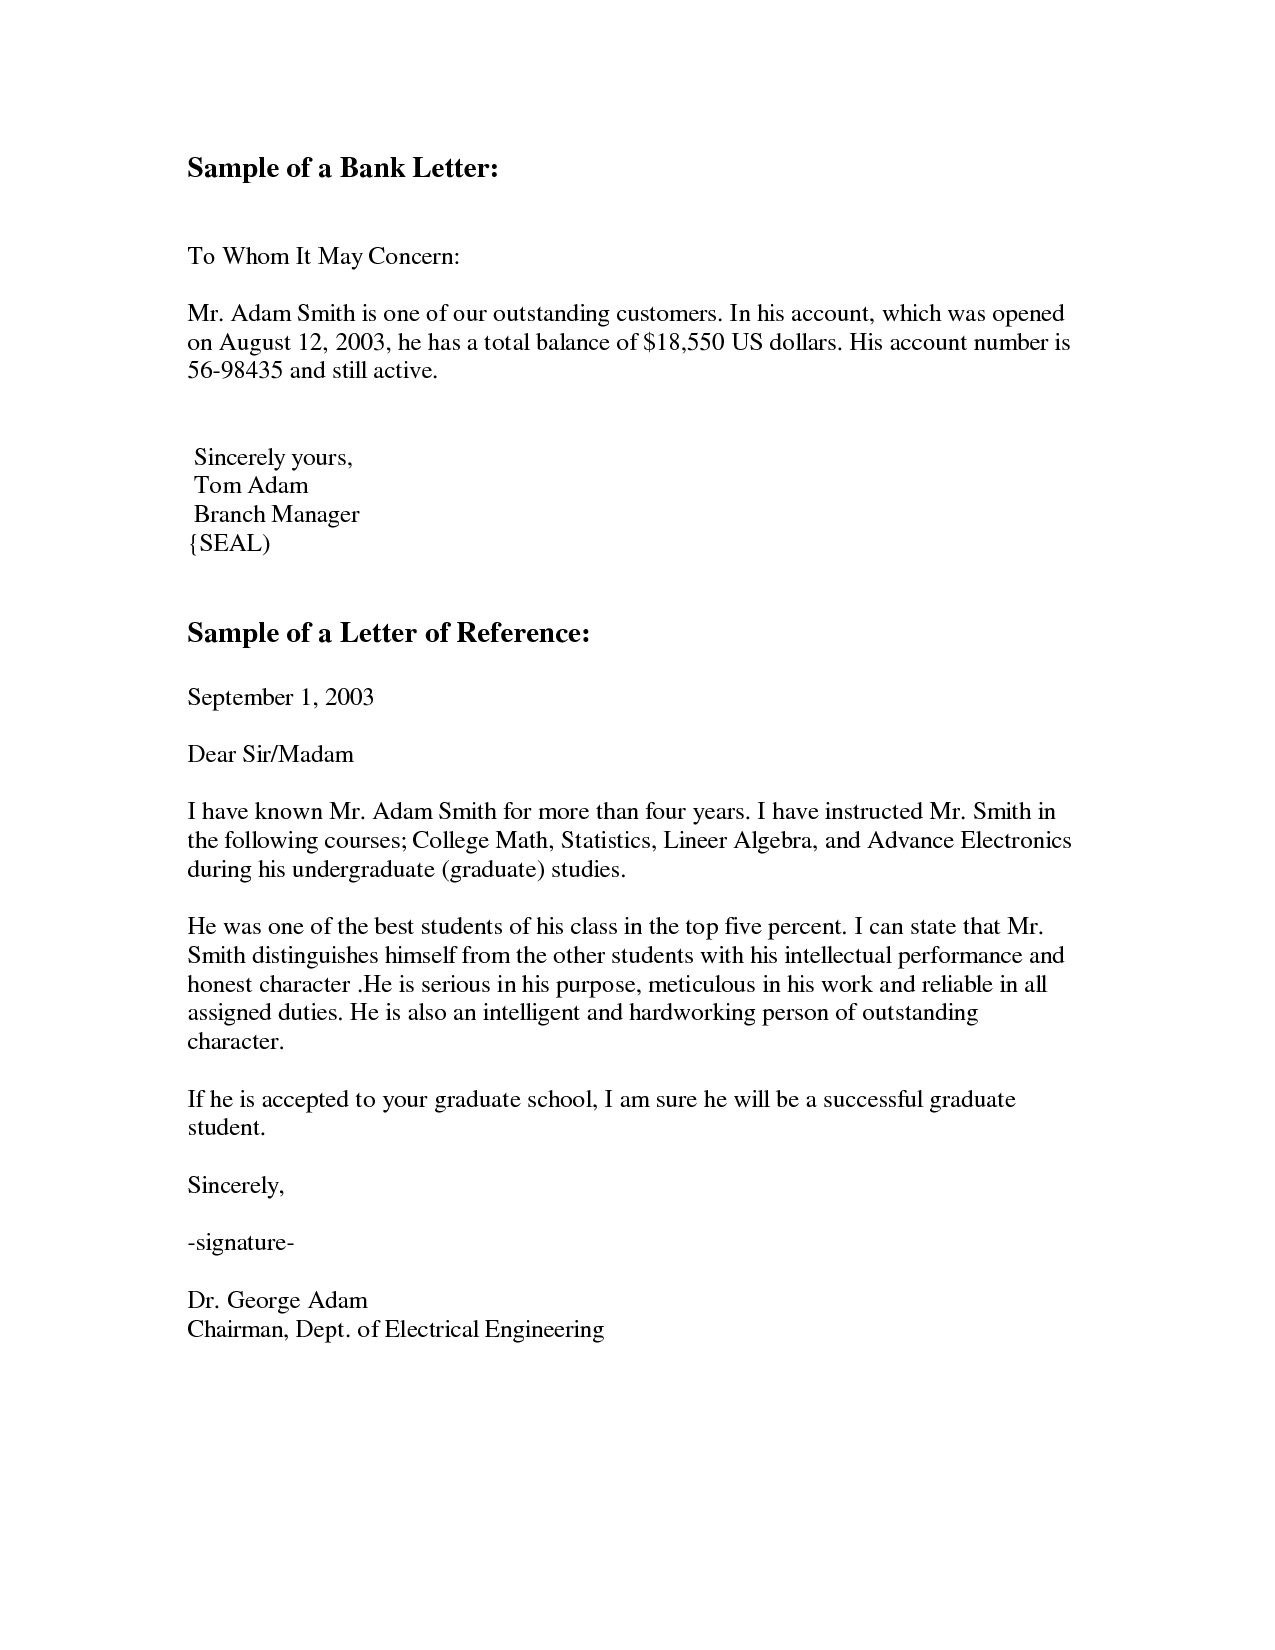 online letter template example-Corporate bylaws Template Elegant formal Letter Template Unique bylaws Template 0d Wallpapers 50 4-e